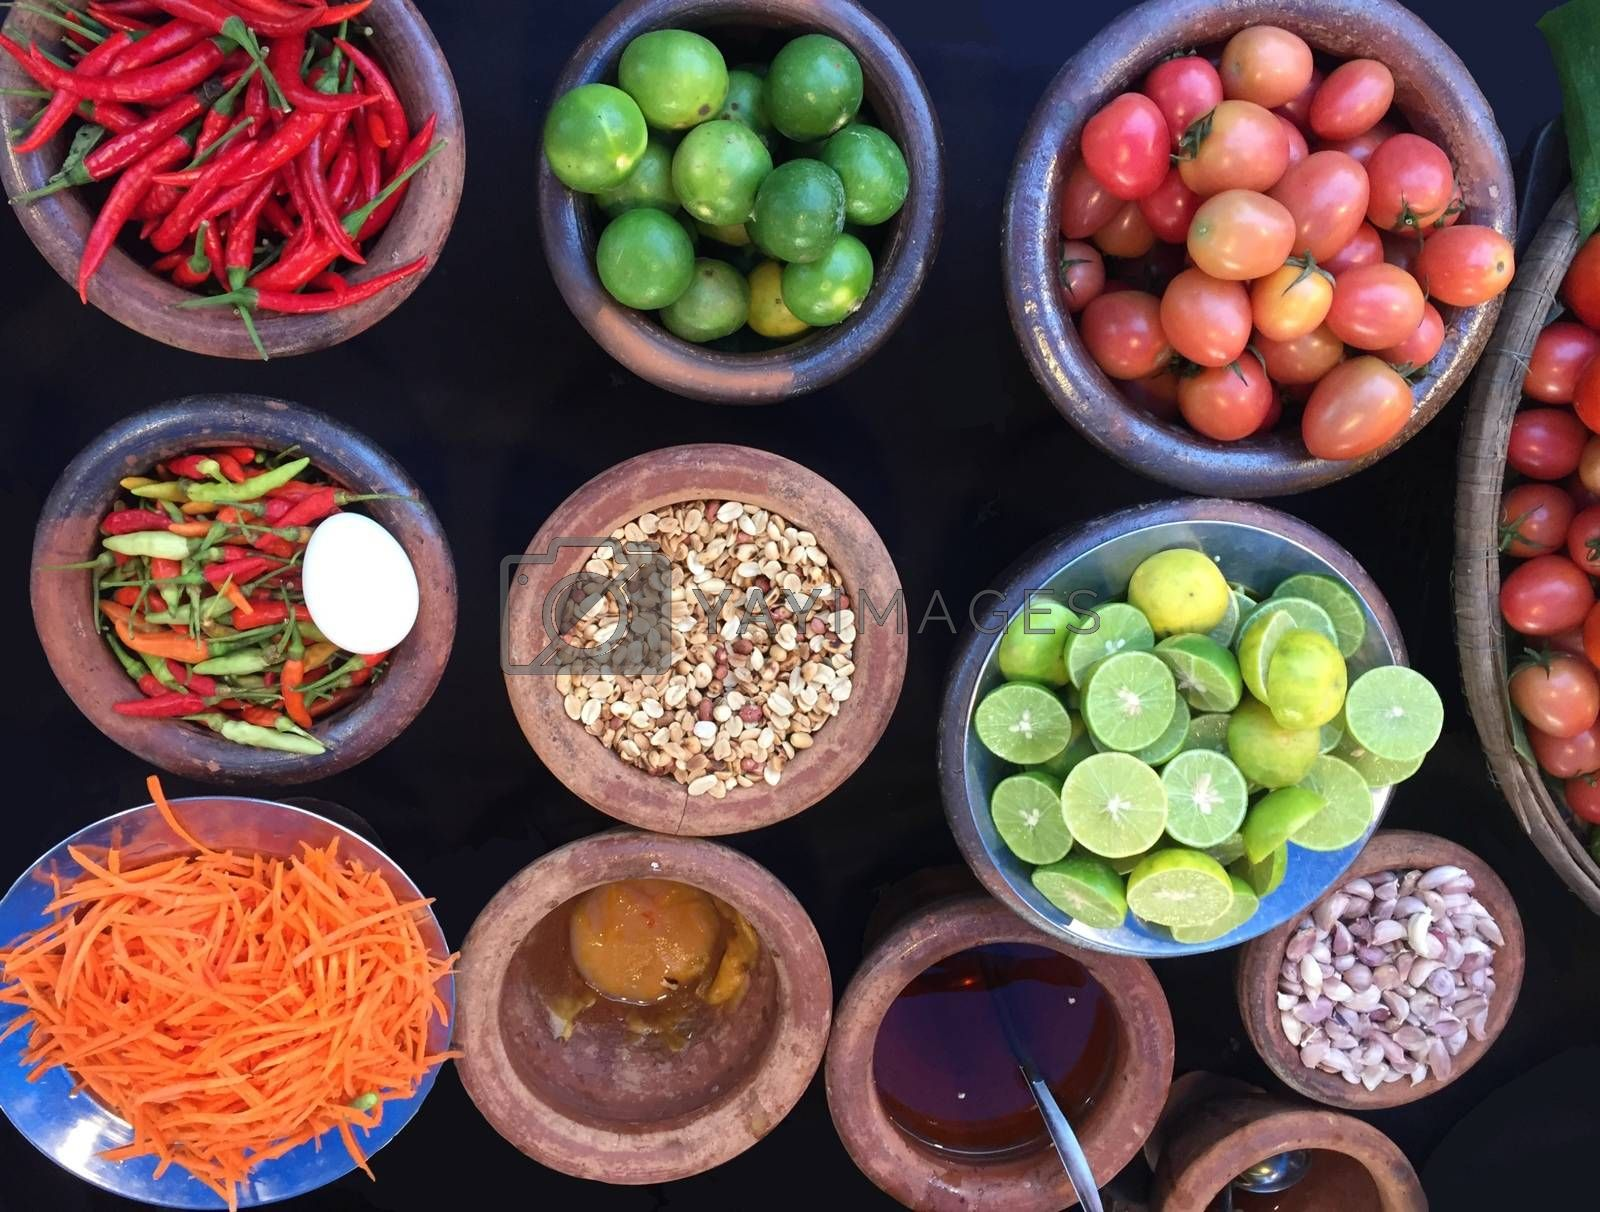 Rustic style raw vegetables, spices in clay or ceramic pots. Top view organic vegetables tomato, hot pepper, carrot, lime in a bowls.